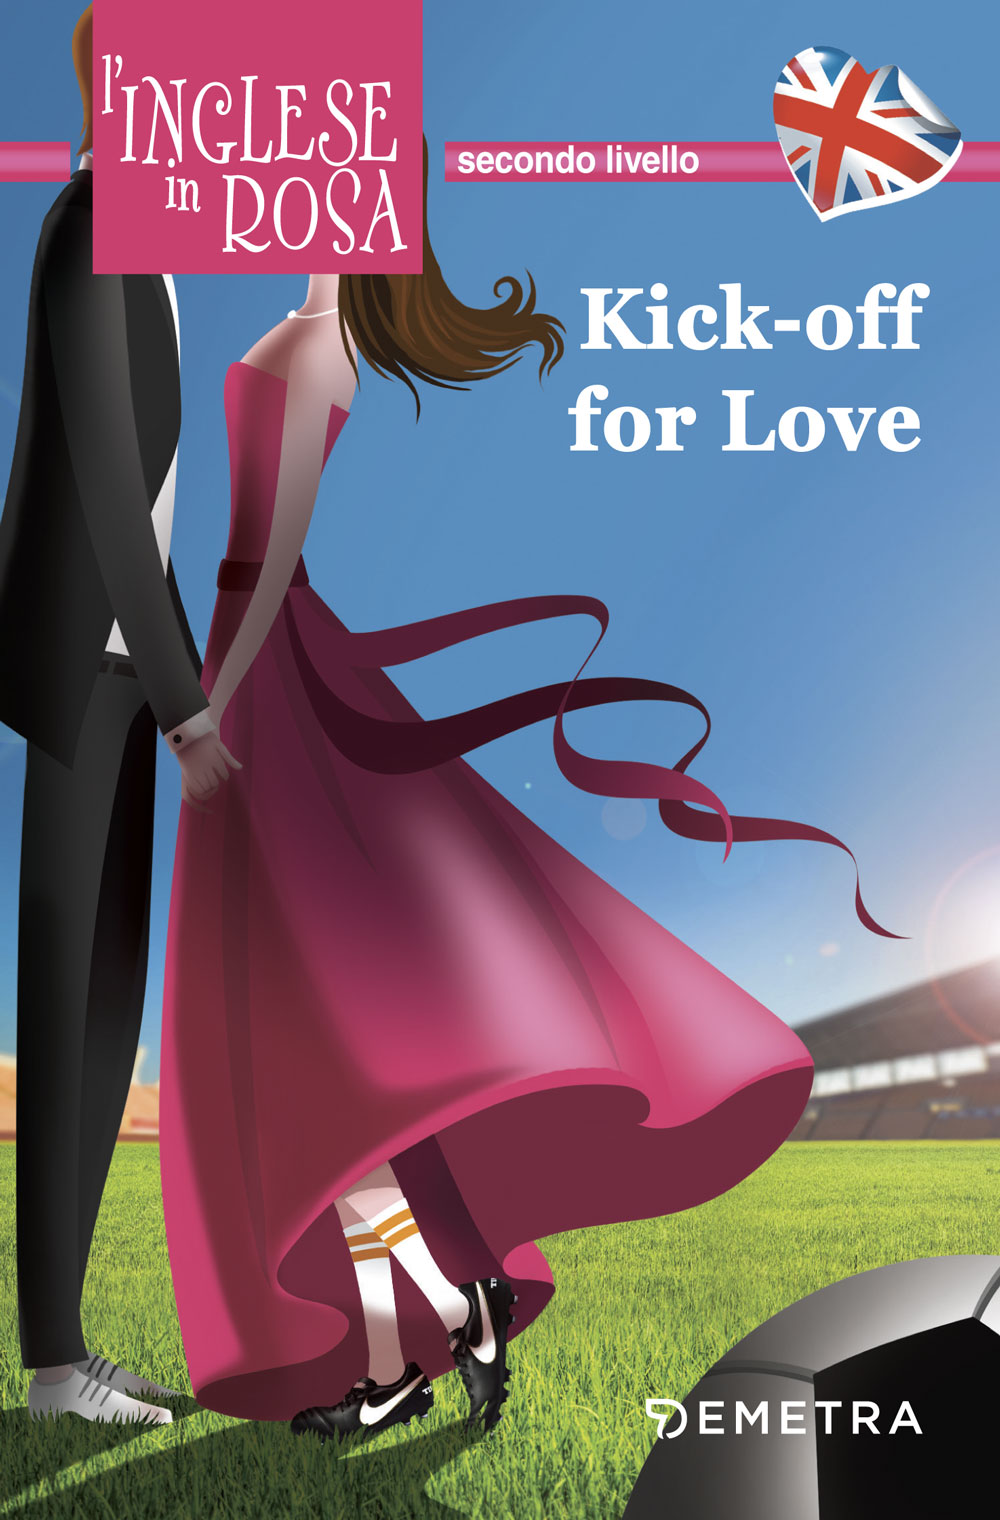 Kick-off for love